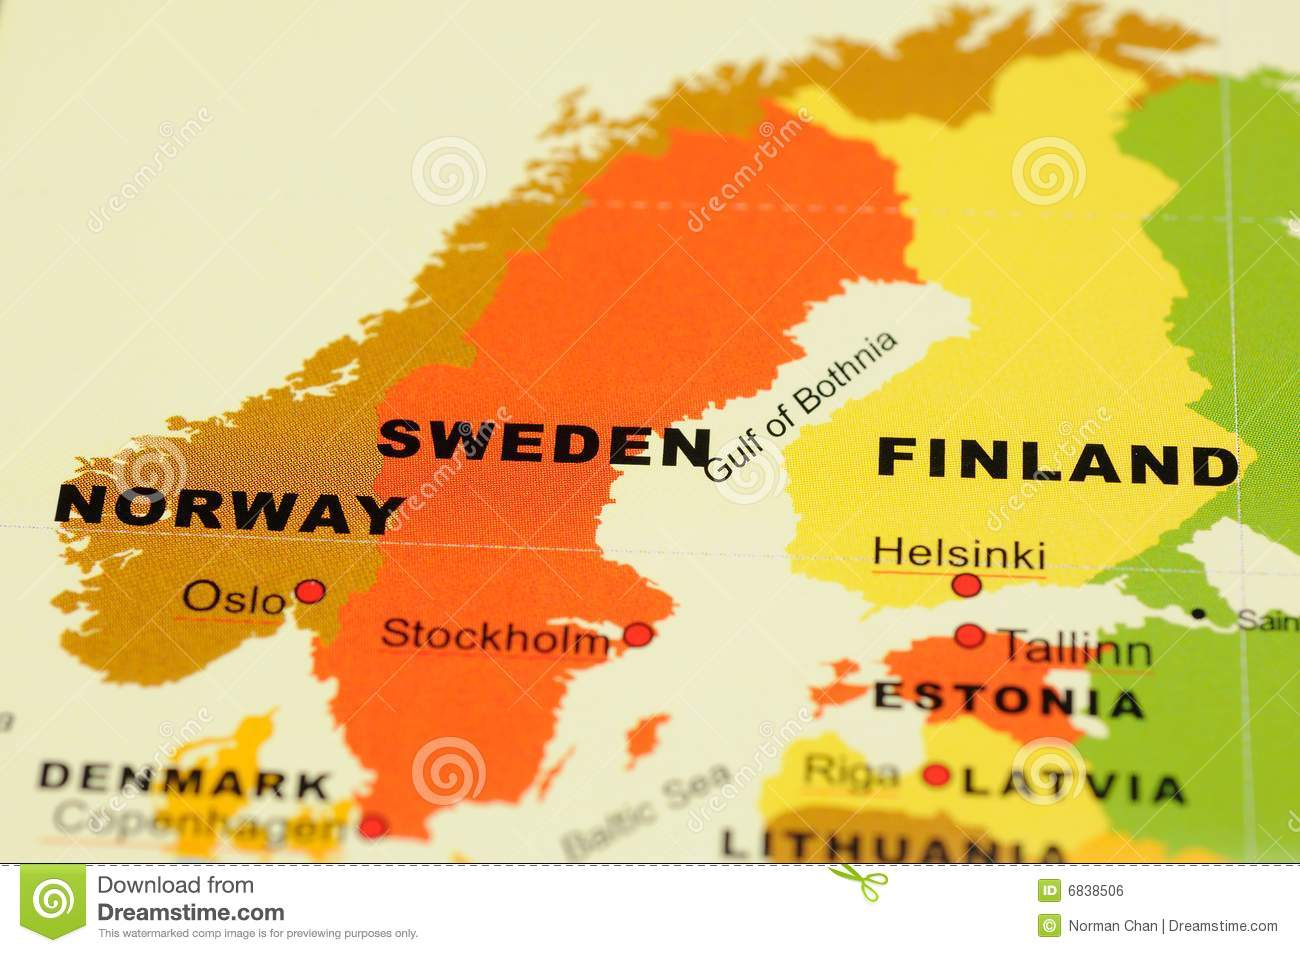 Picture of: Norway Sweden And Finland On Map Stock Photo Image Of Location Country 6838506